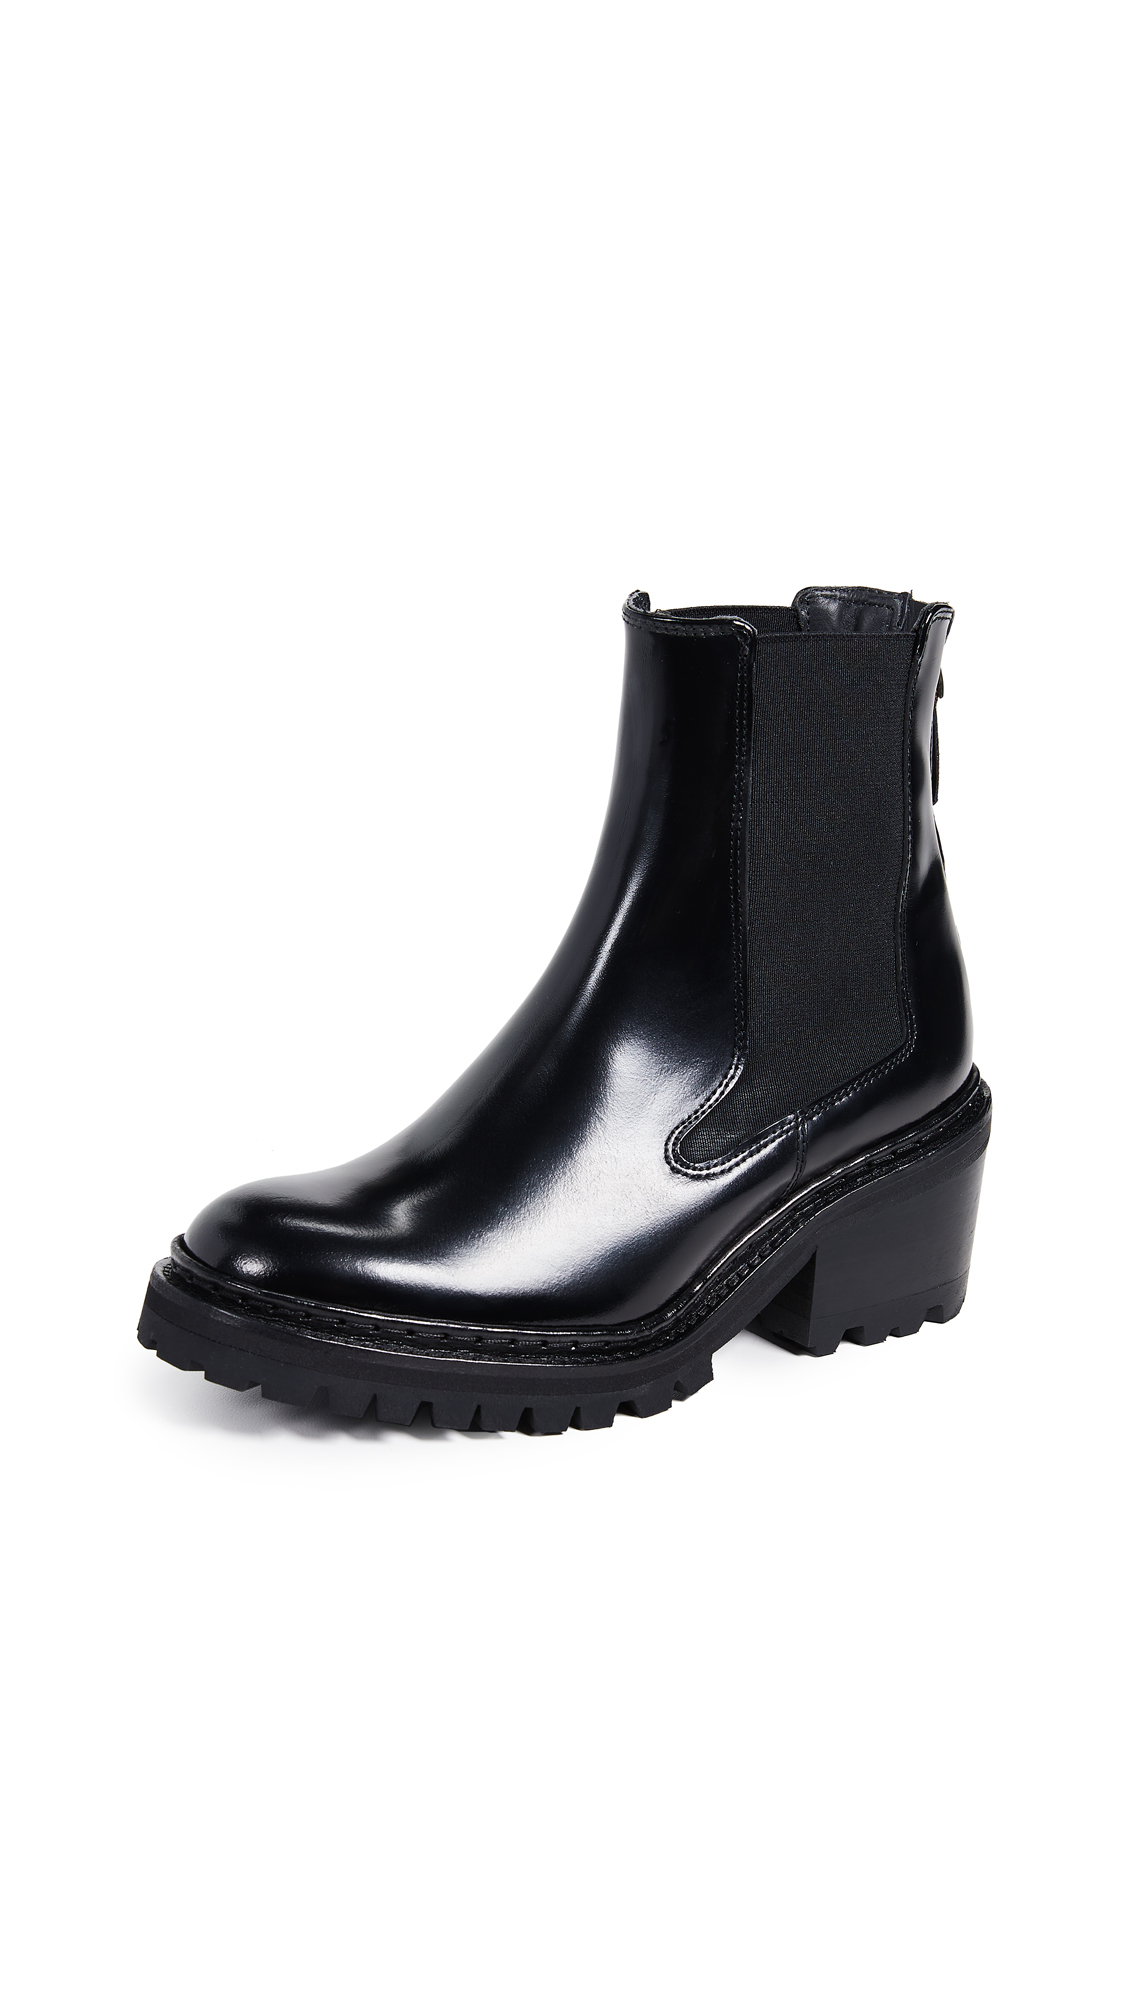 WANT Les Essentiels Valdez Chelsea Boots In Black/Black